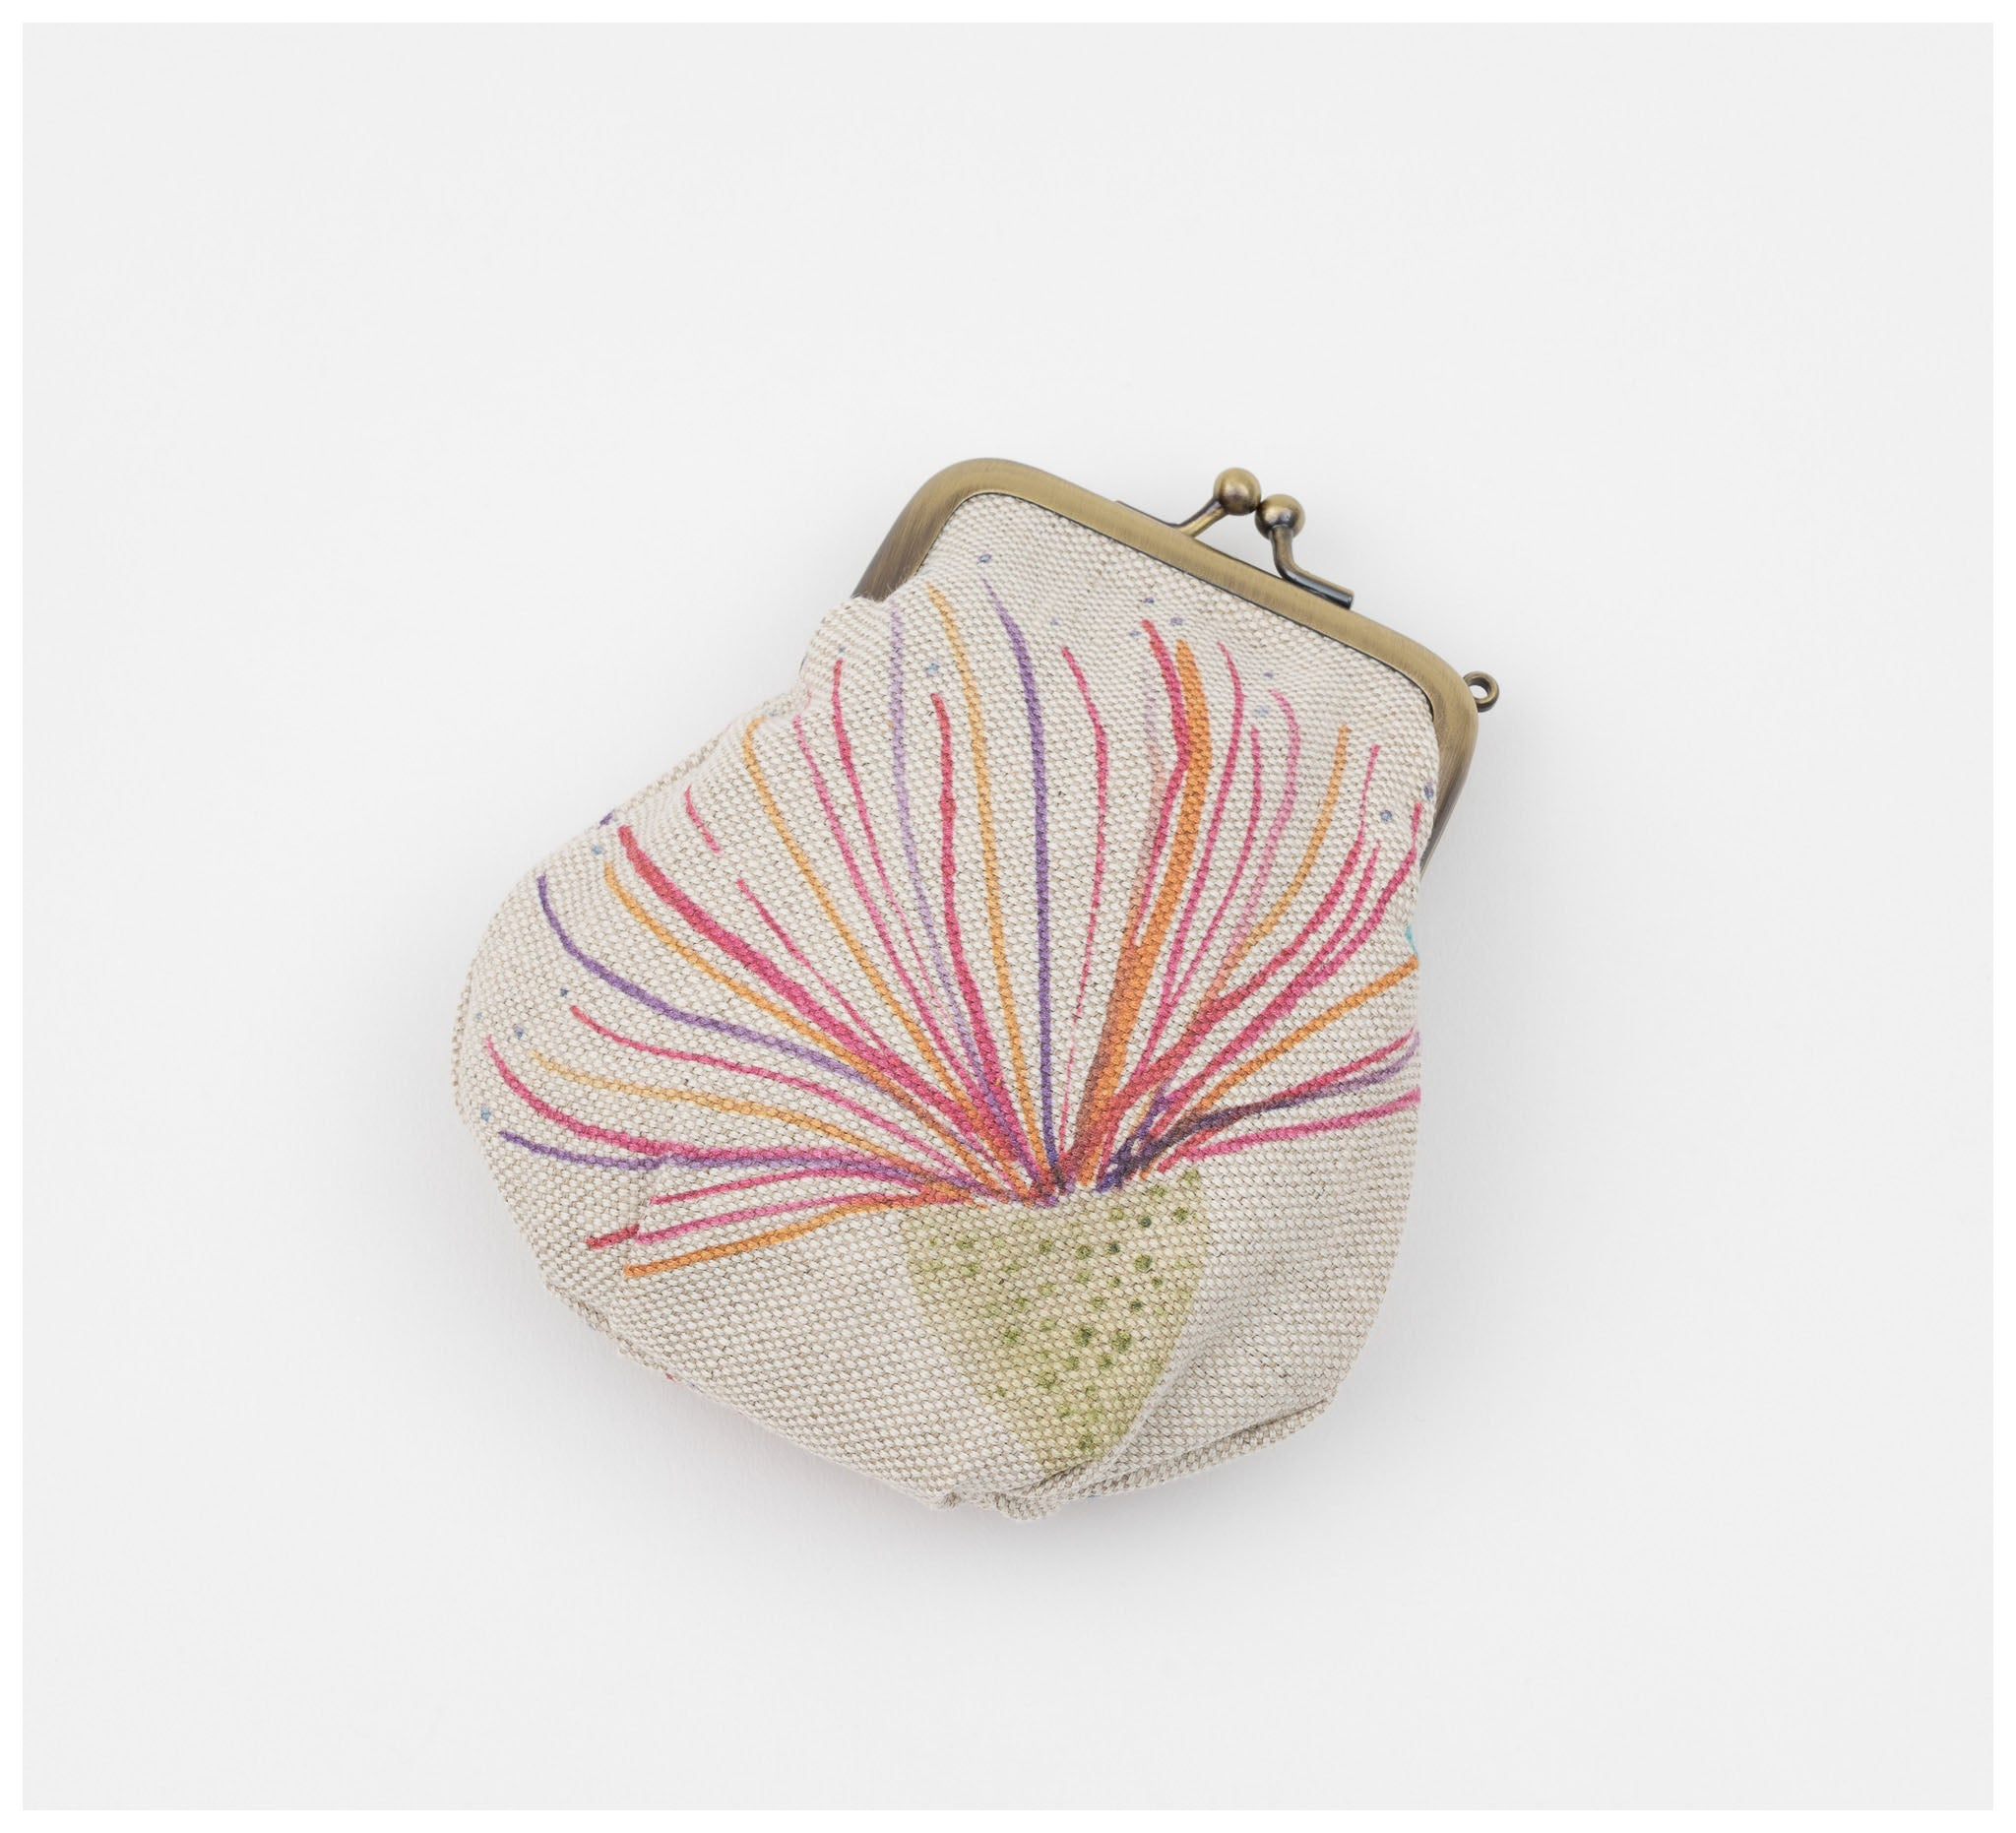 Clare Mazitelli Designs - Clasp Purse - Big Gum